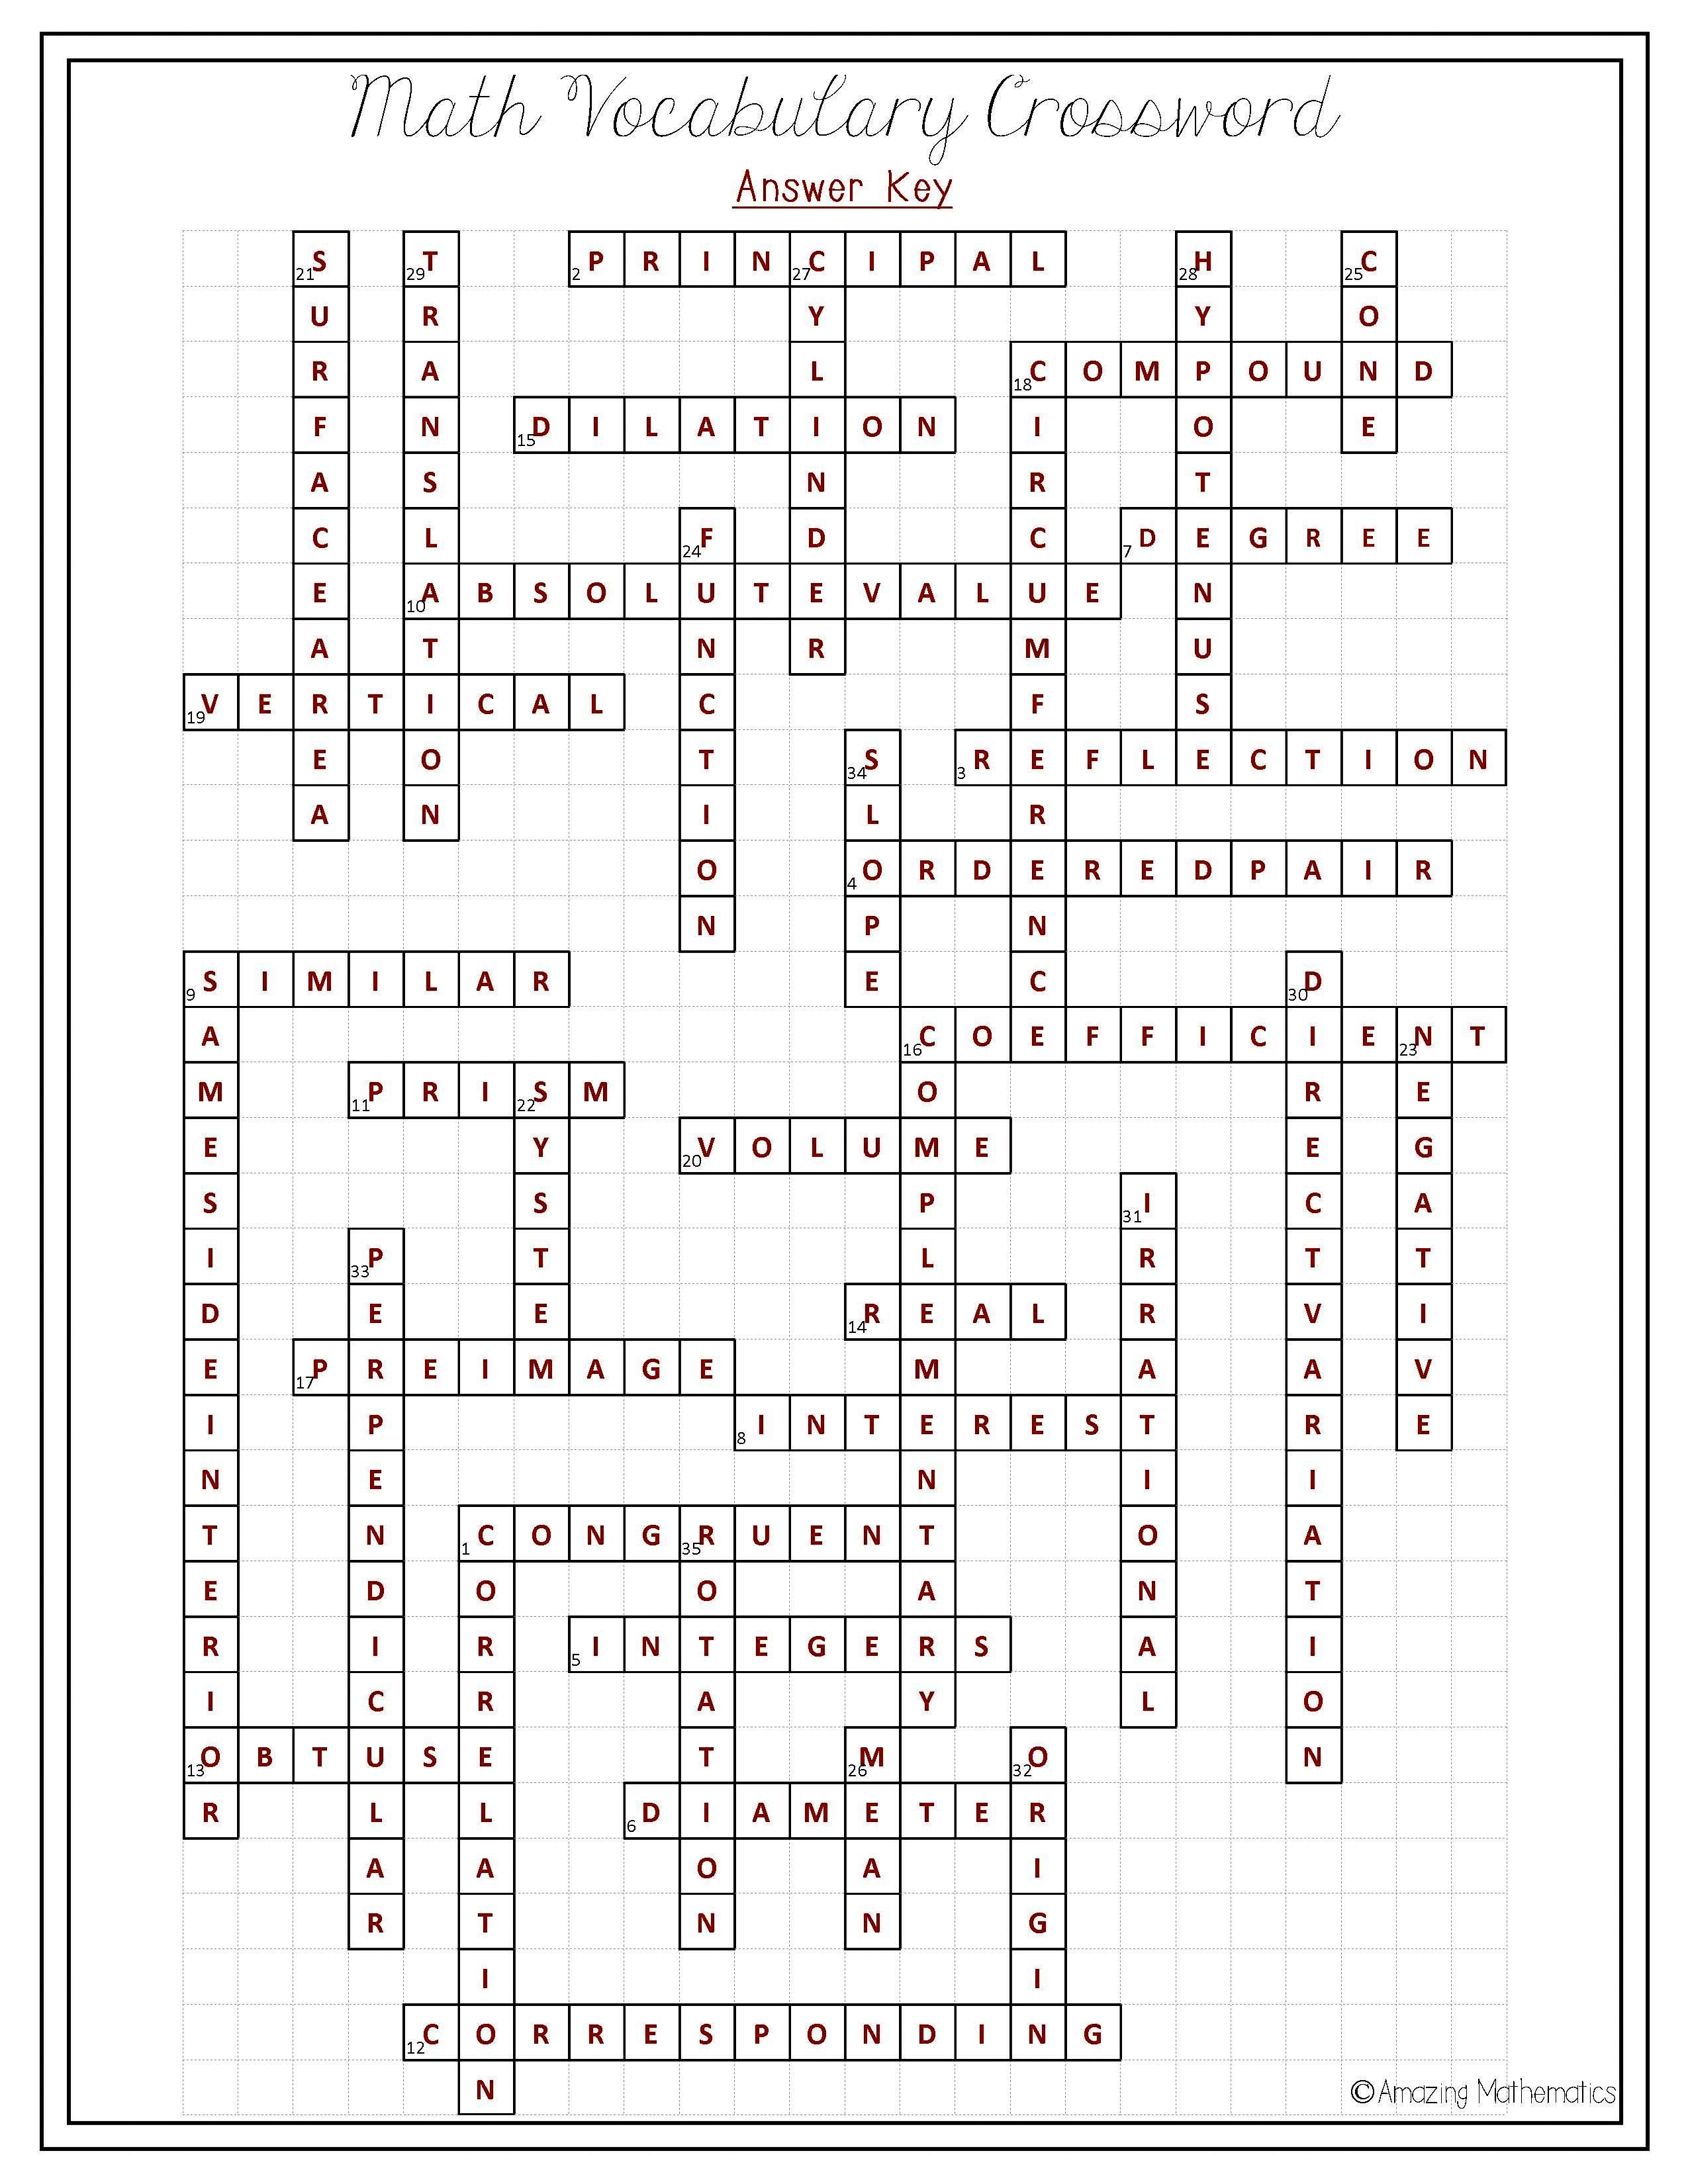 8Th Grade Math Vocabulary Crossword | Puzzles | Math Vocabulary, 8Th - Printable Crossword Puzzles For 8Th Graders